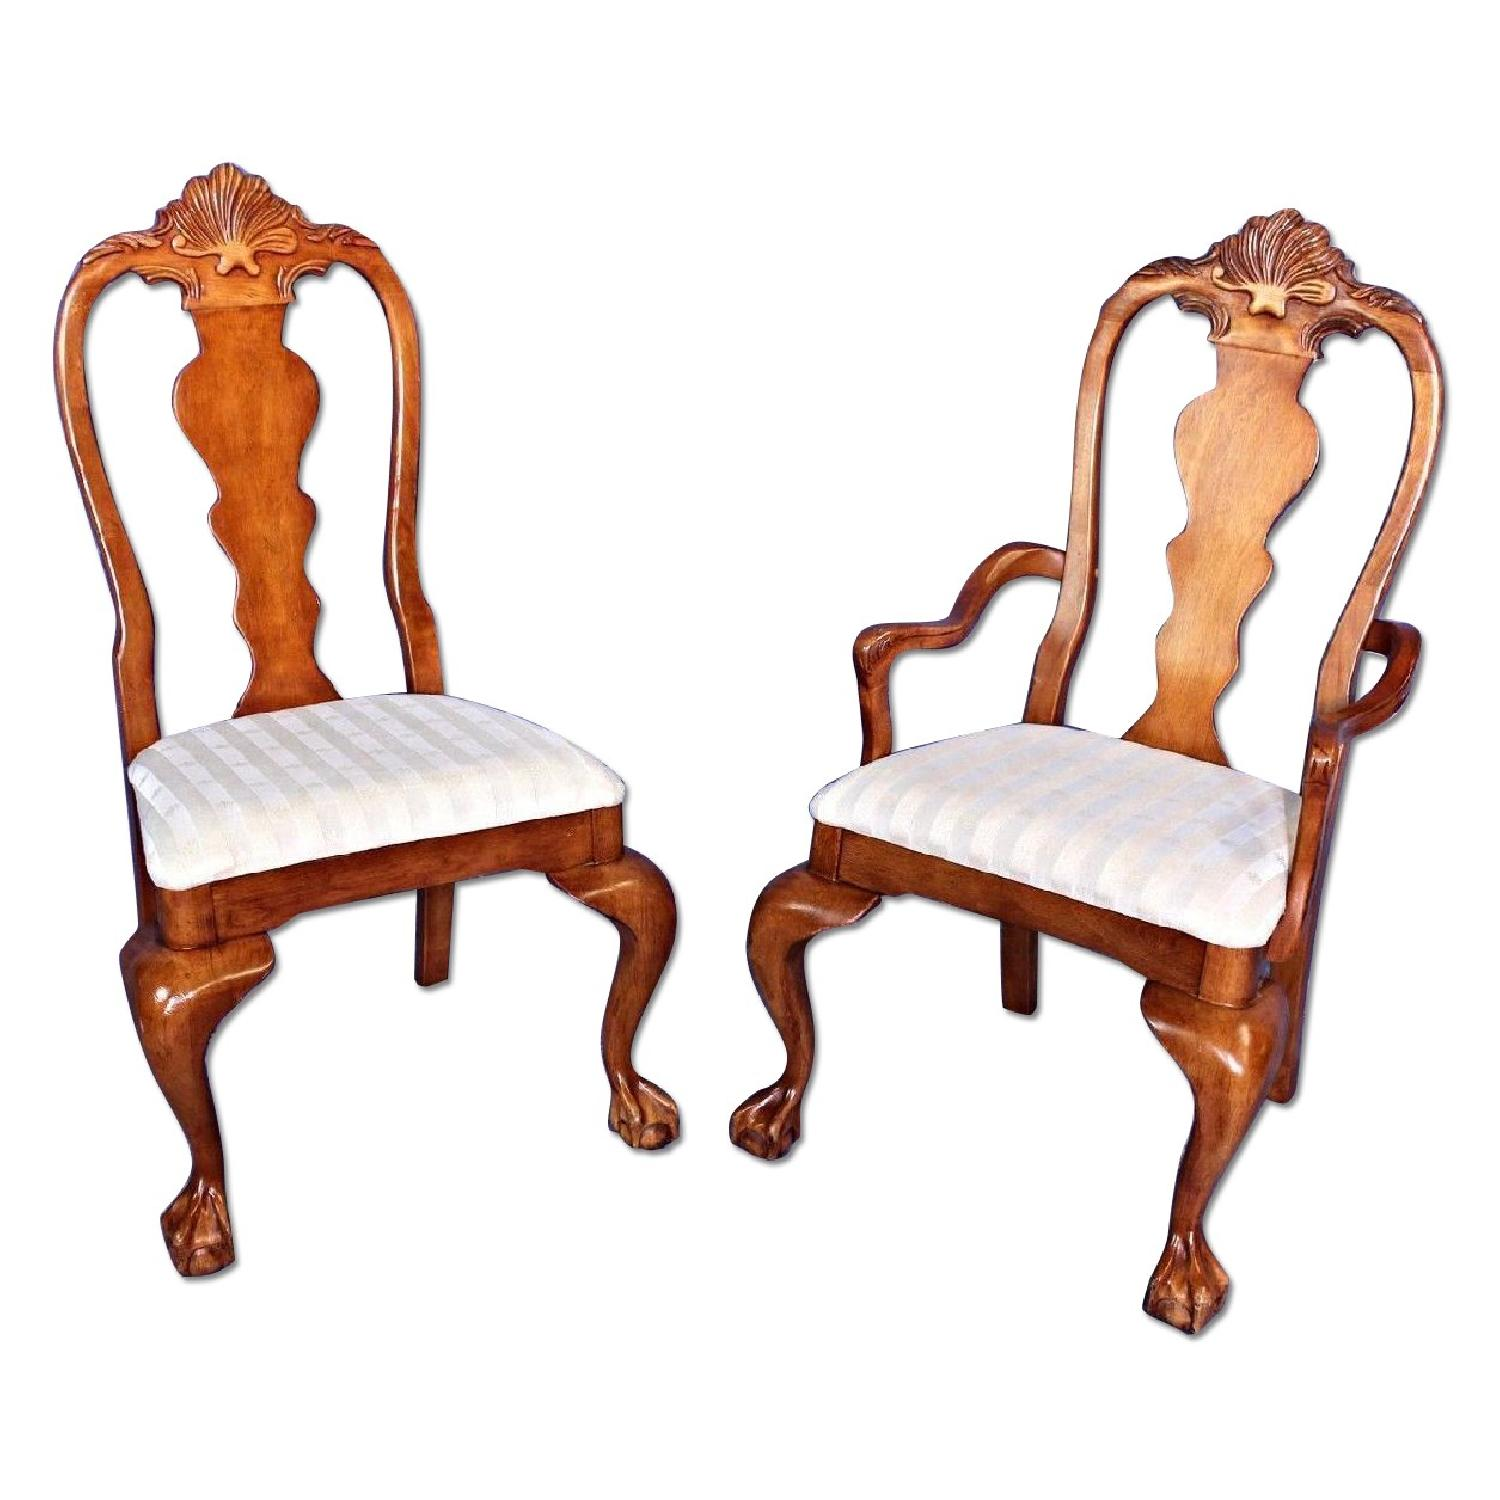 Wood Dining Room Chair w/ Claw Feet